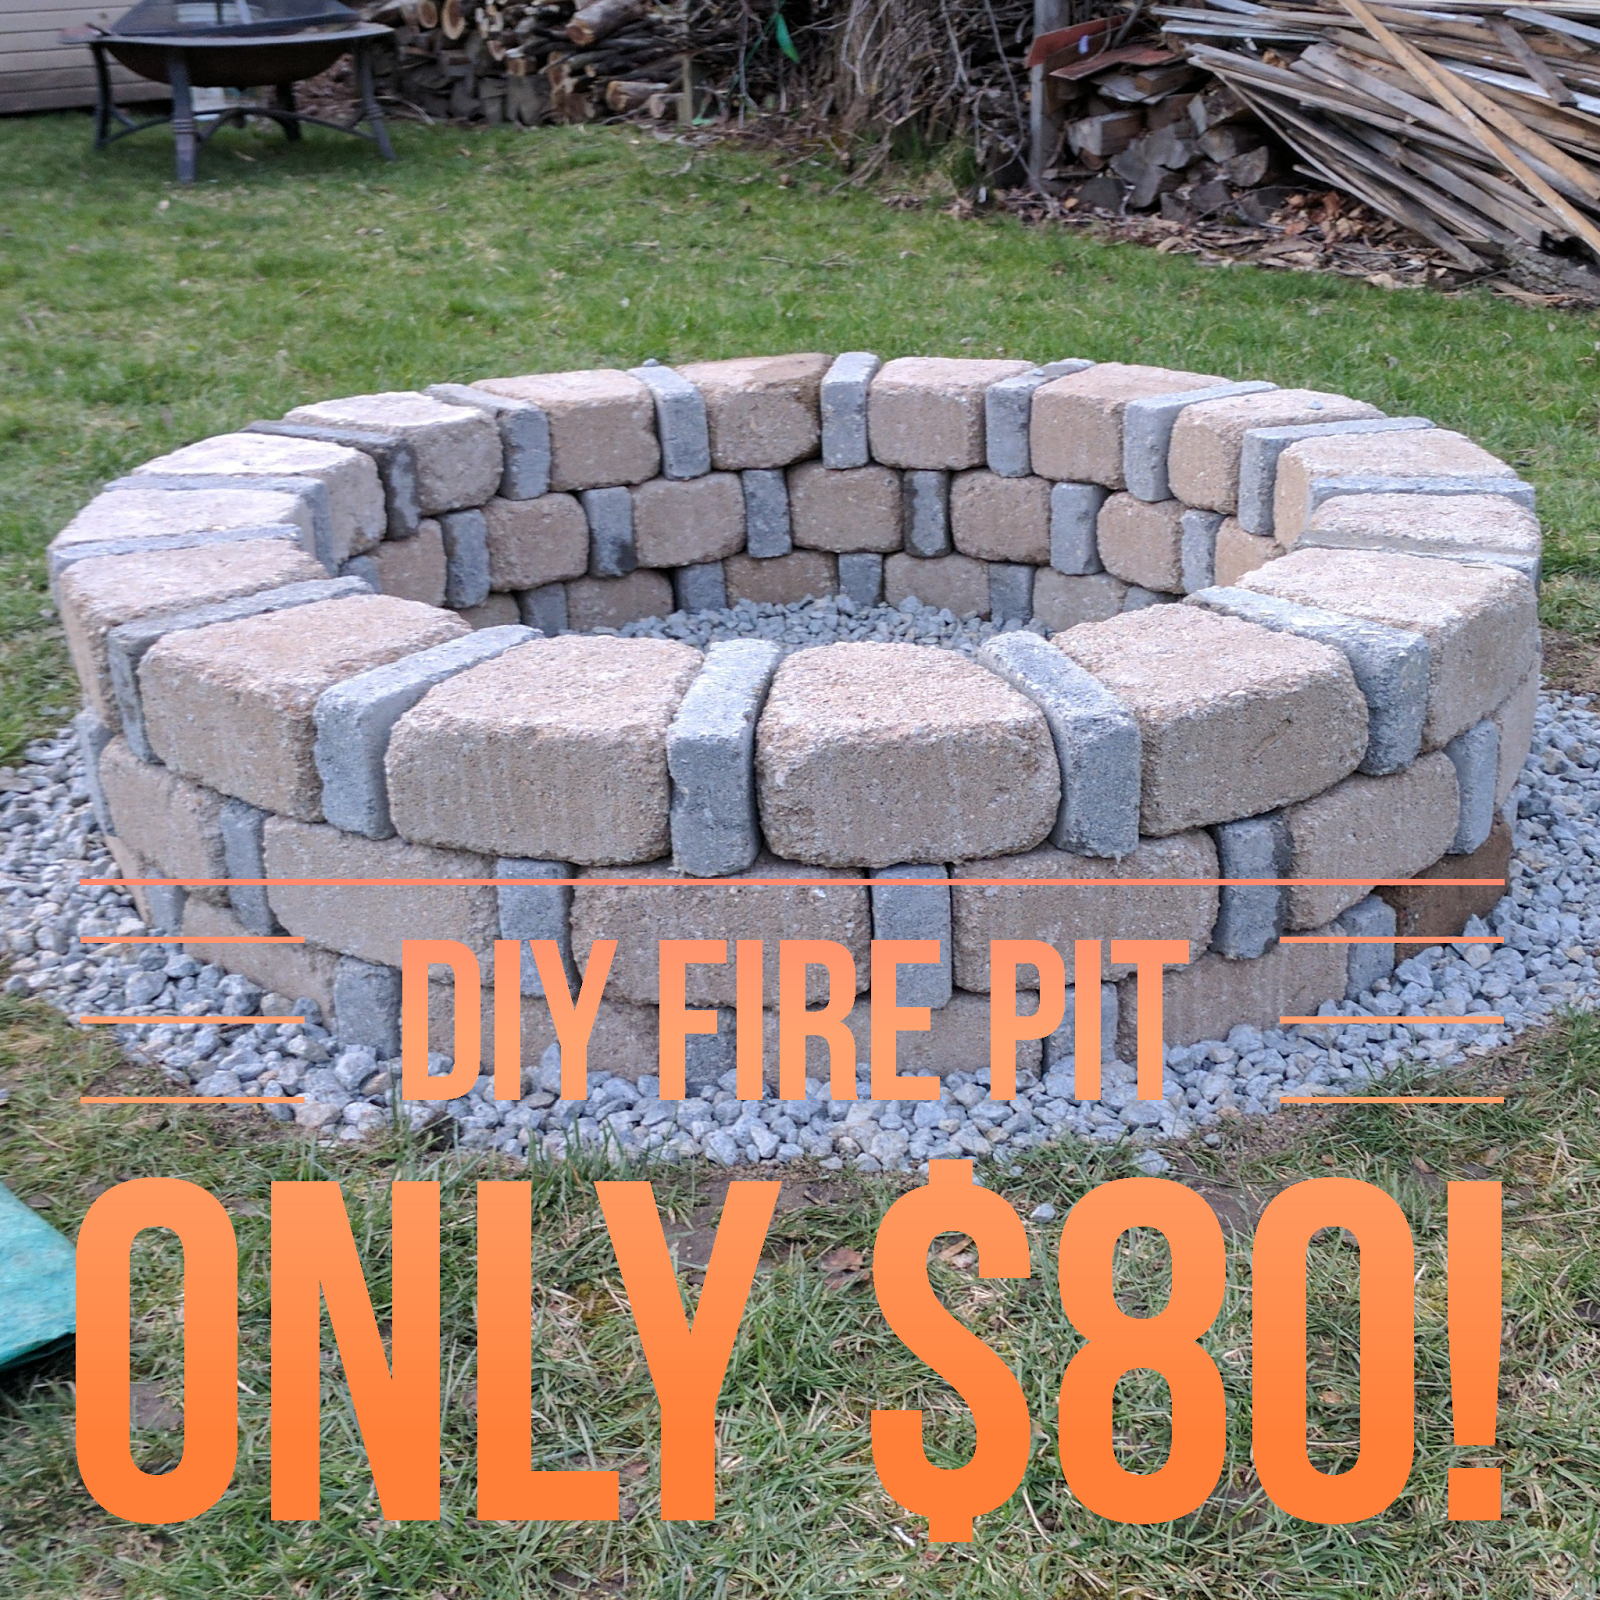 Diy Brick Fire Pit For Only 80 Brick Fire Pit Fire Pit Fire